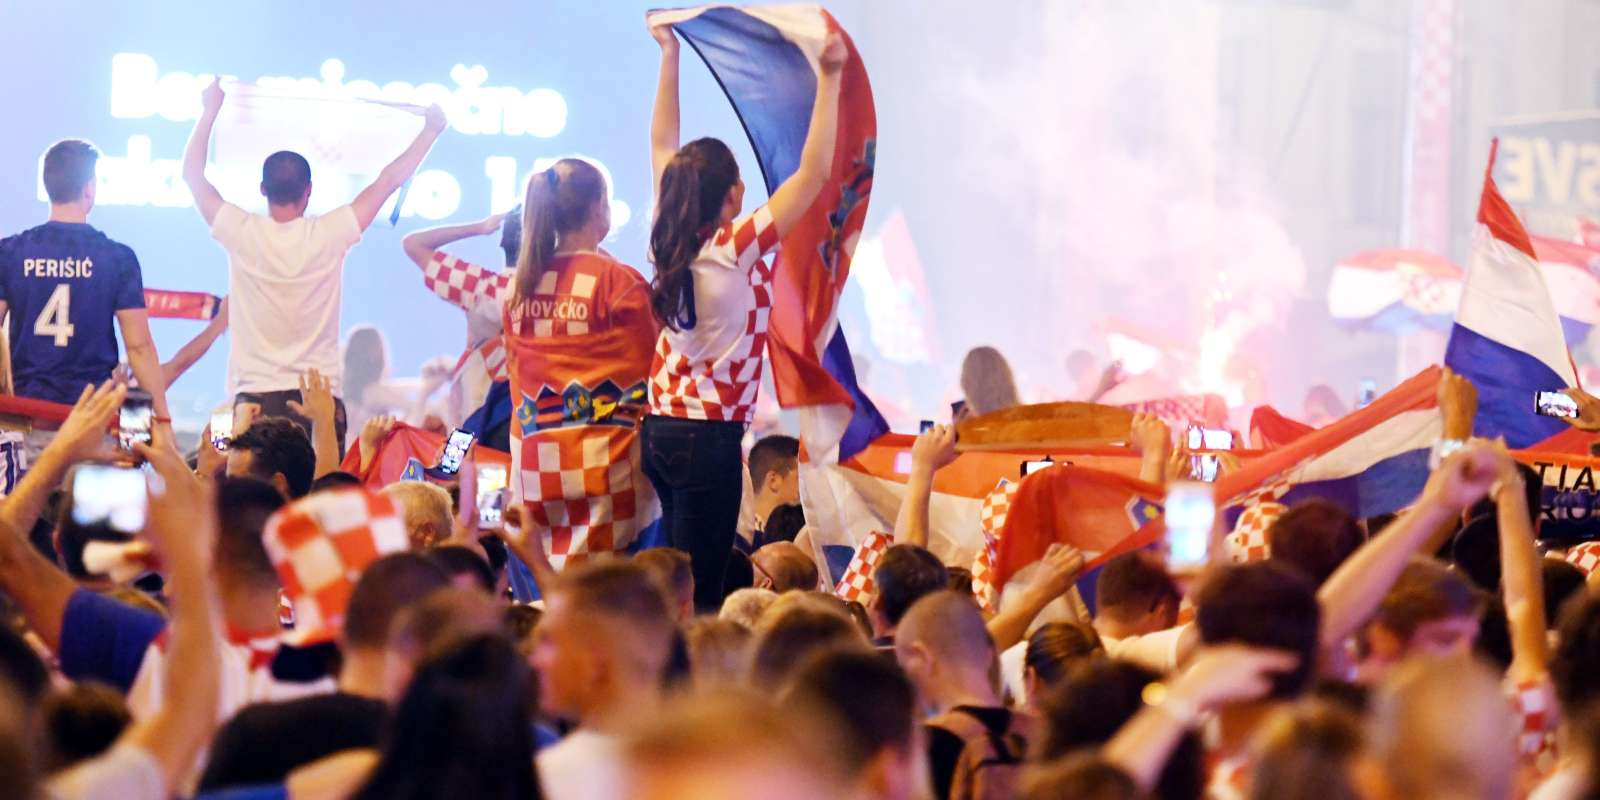 Croatia's fans celebrate victory against Russia in the Croatian capital Zagreb's main square after the 2018 FIFA World Cup Russia Round of 8 match between Russia and Croatia on July 7, 2018. / AFP / Denis Lovrovic